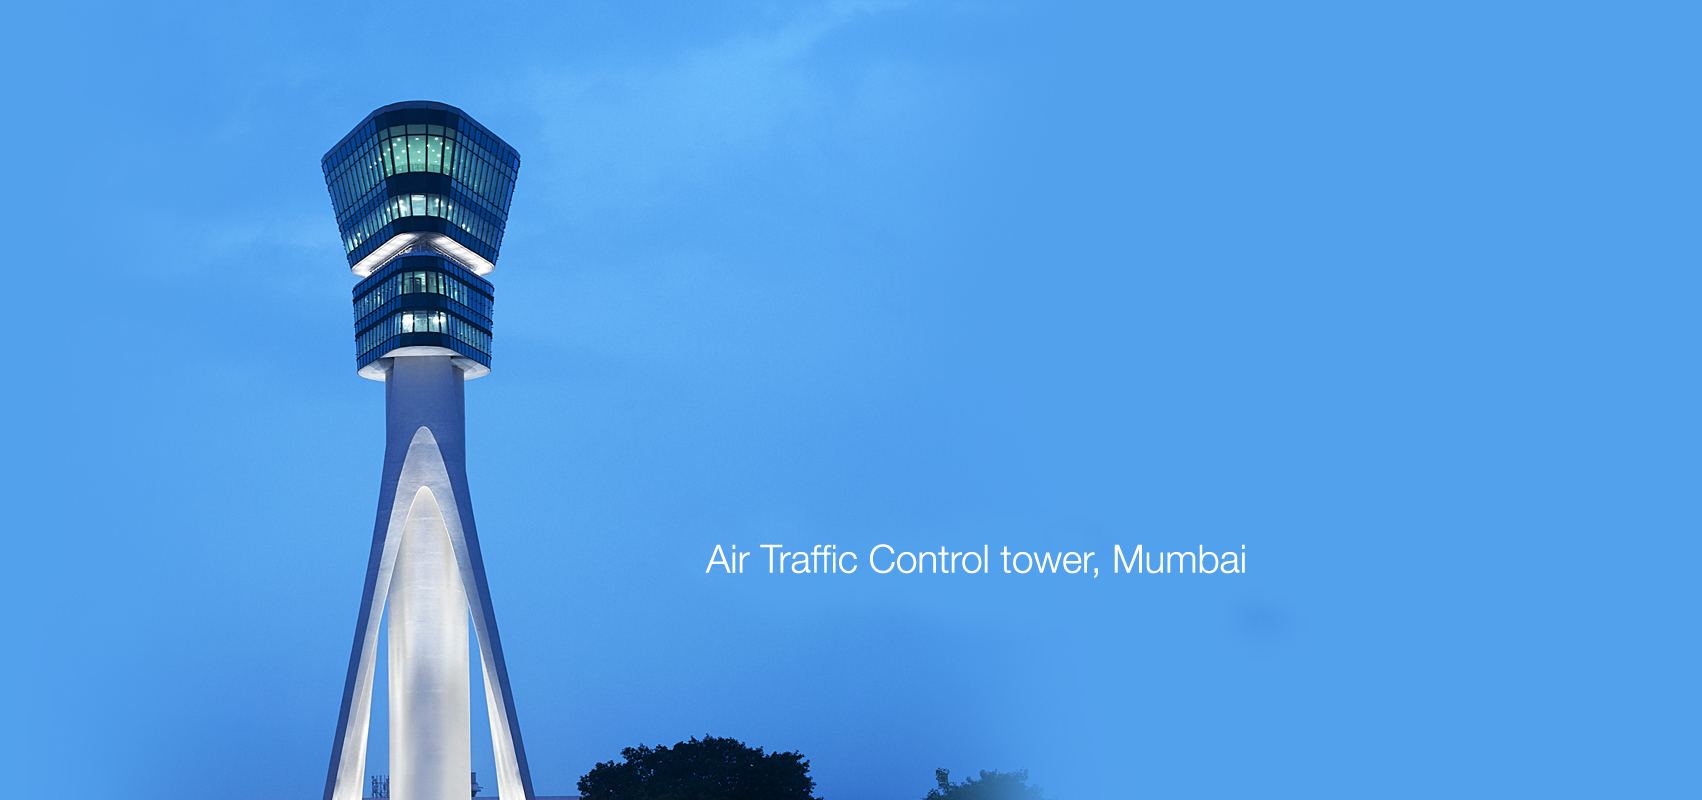 ATC Tower, Mumbai